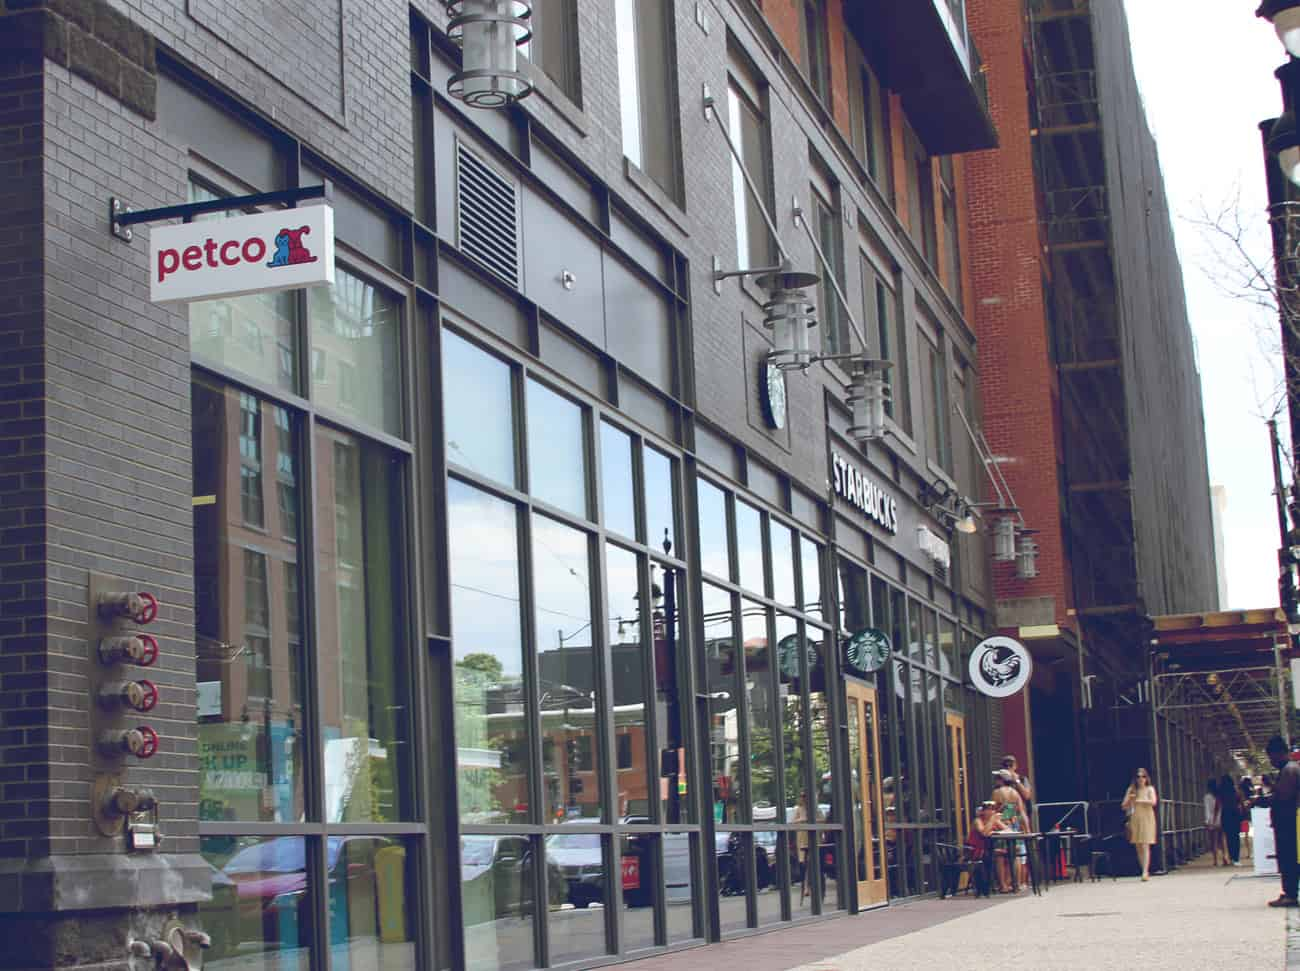 Petco and Starbucks on H Street